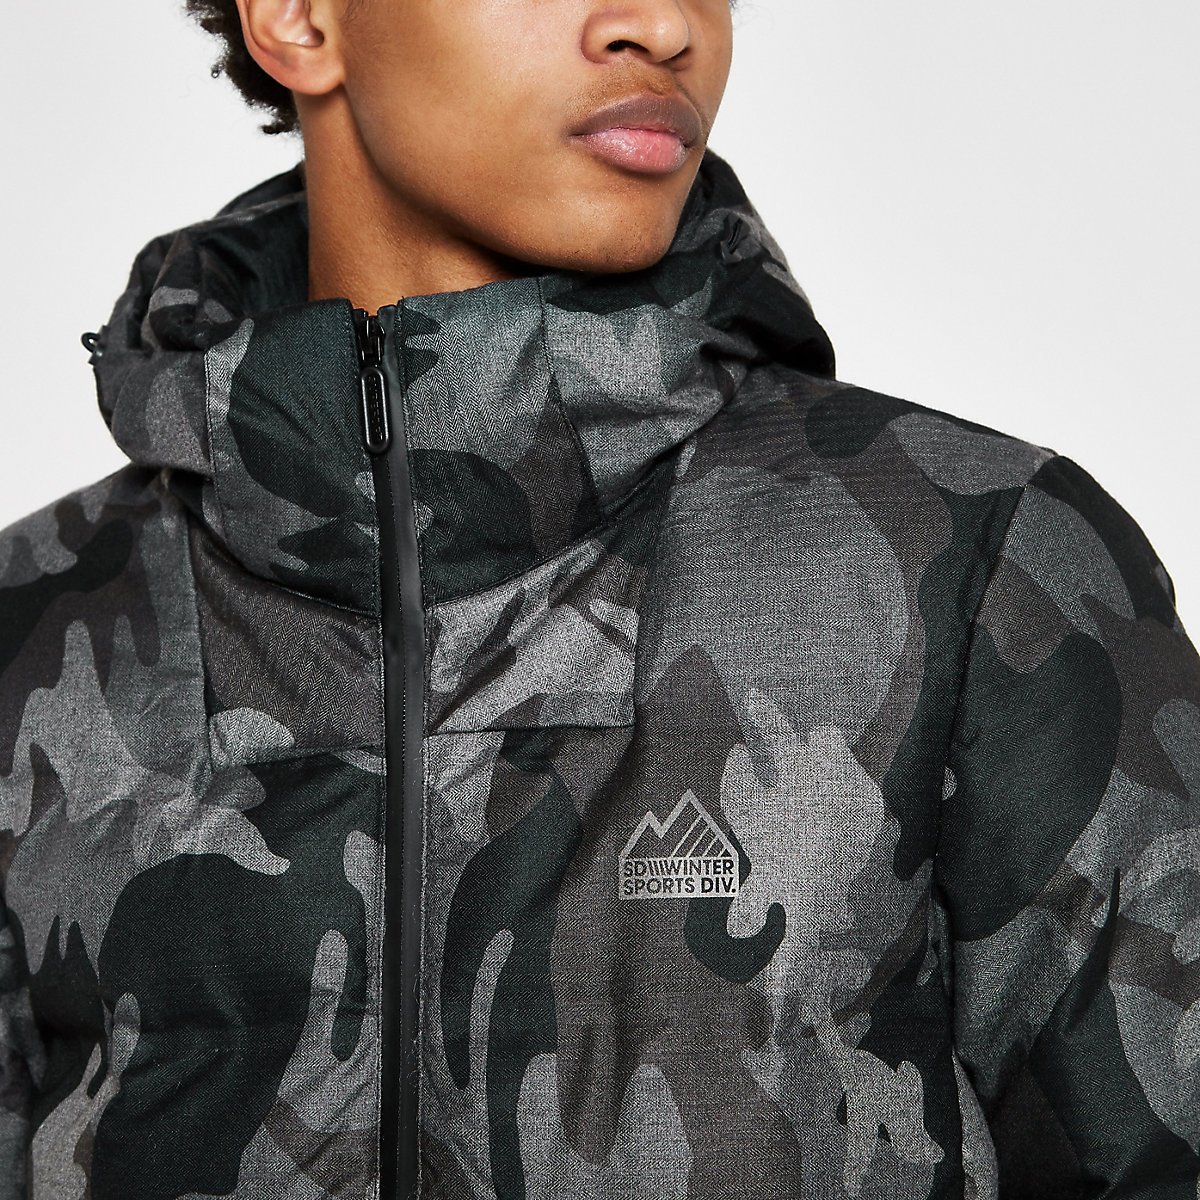 Superdry grey camo puffer jacket